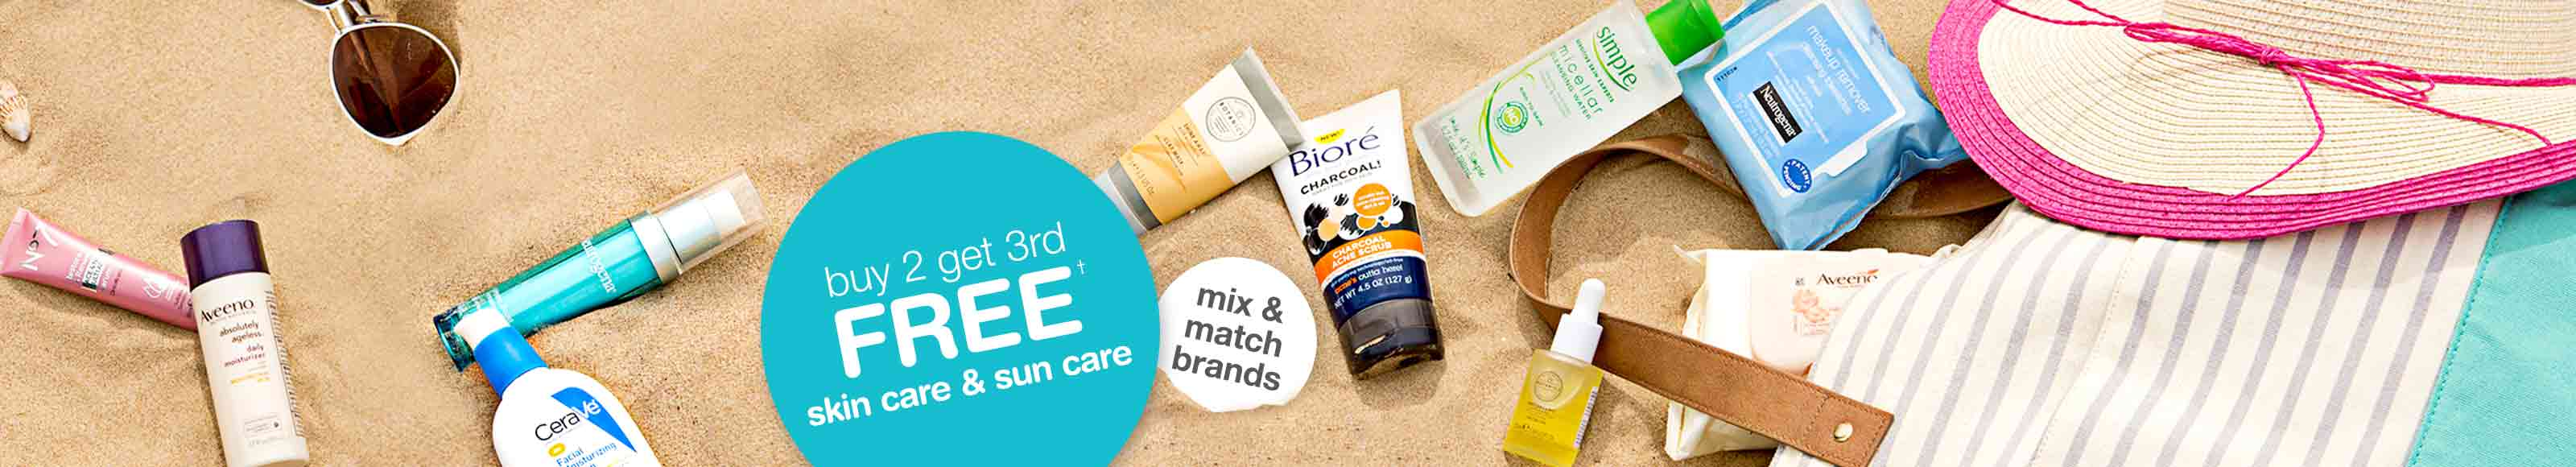 Buy 2 get 3rd FREE† skin care & sun care. Mix & Match brands.